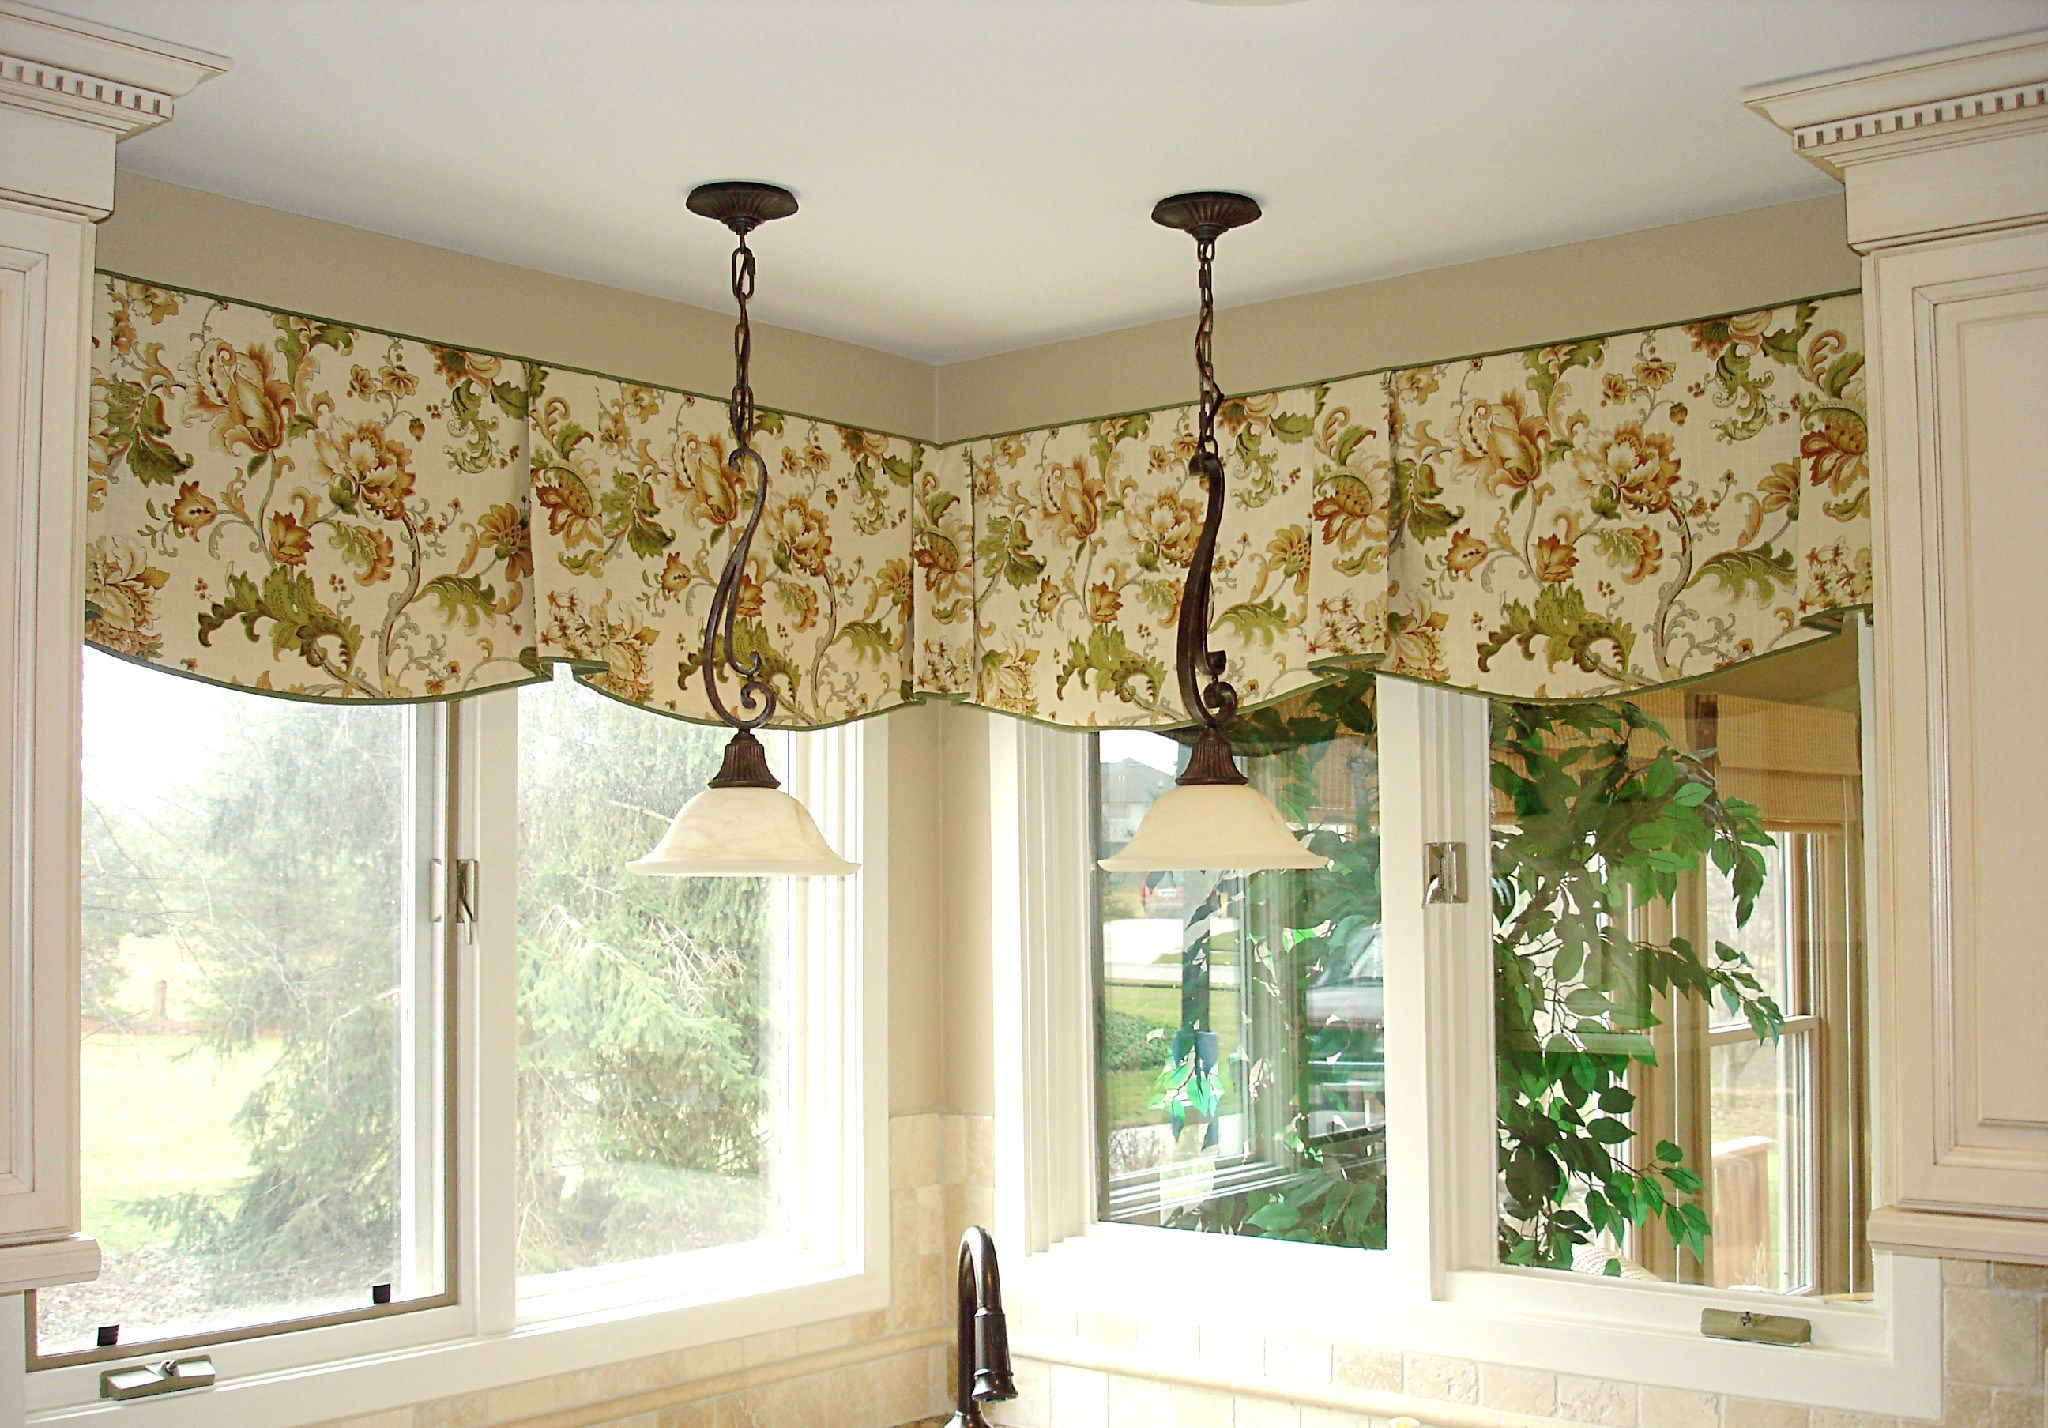 Kitchens Kitchen Cabinets Unique Kitchen Valance Ideas Mesmerizing